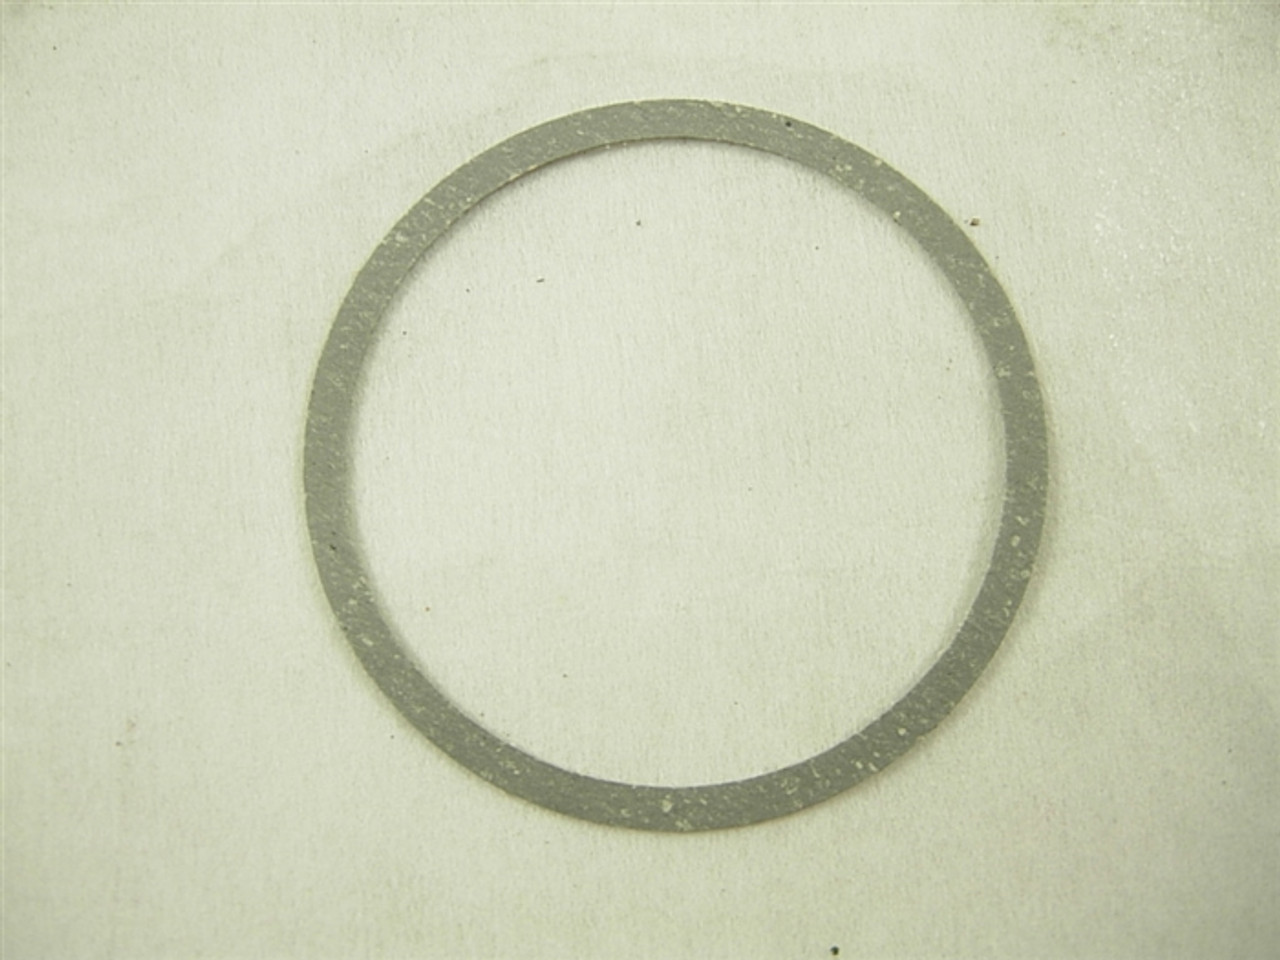 GASKET FOR TIMING CHAIN COVER 13114-A173-18